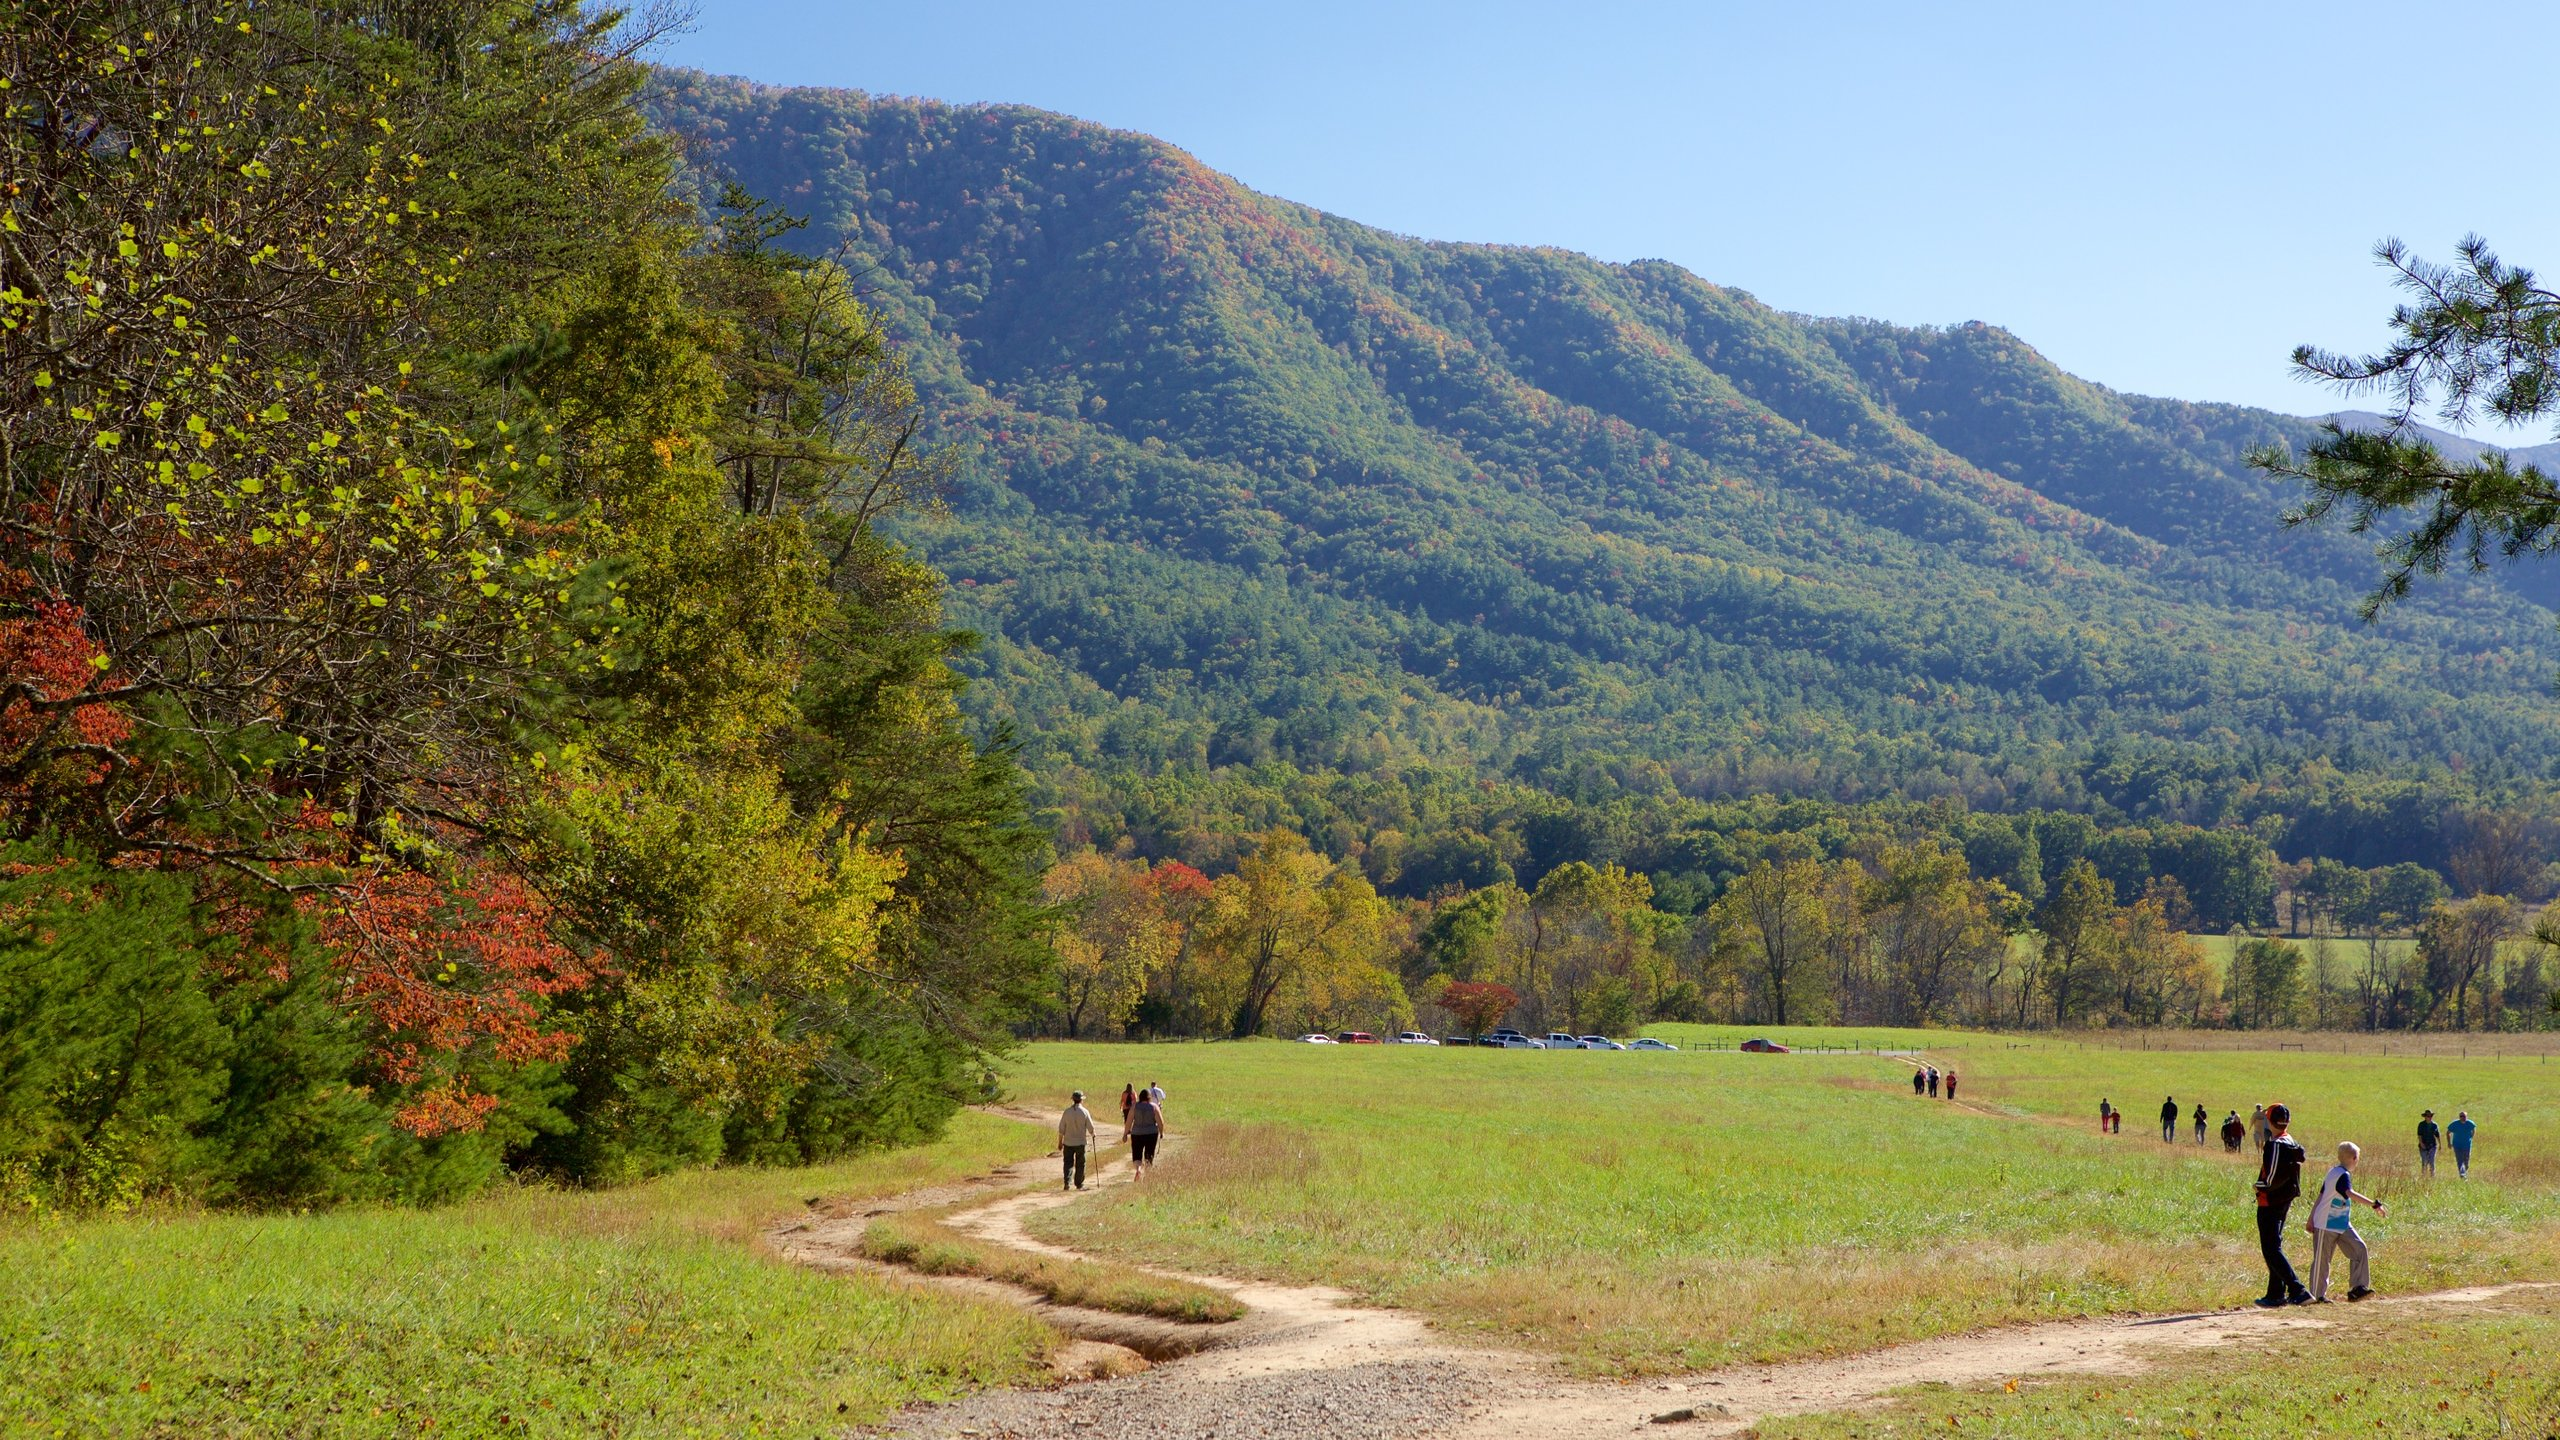 Cades Cove, Townsend, Tennessee, United States of America